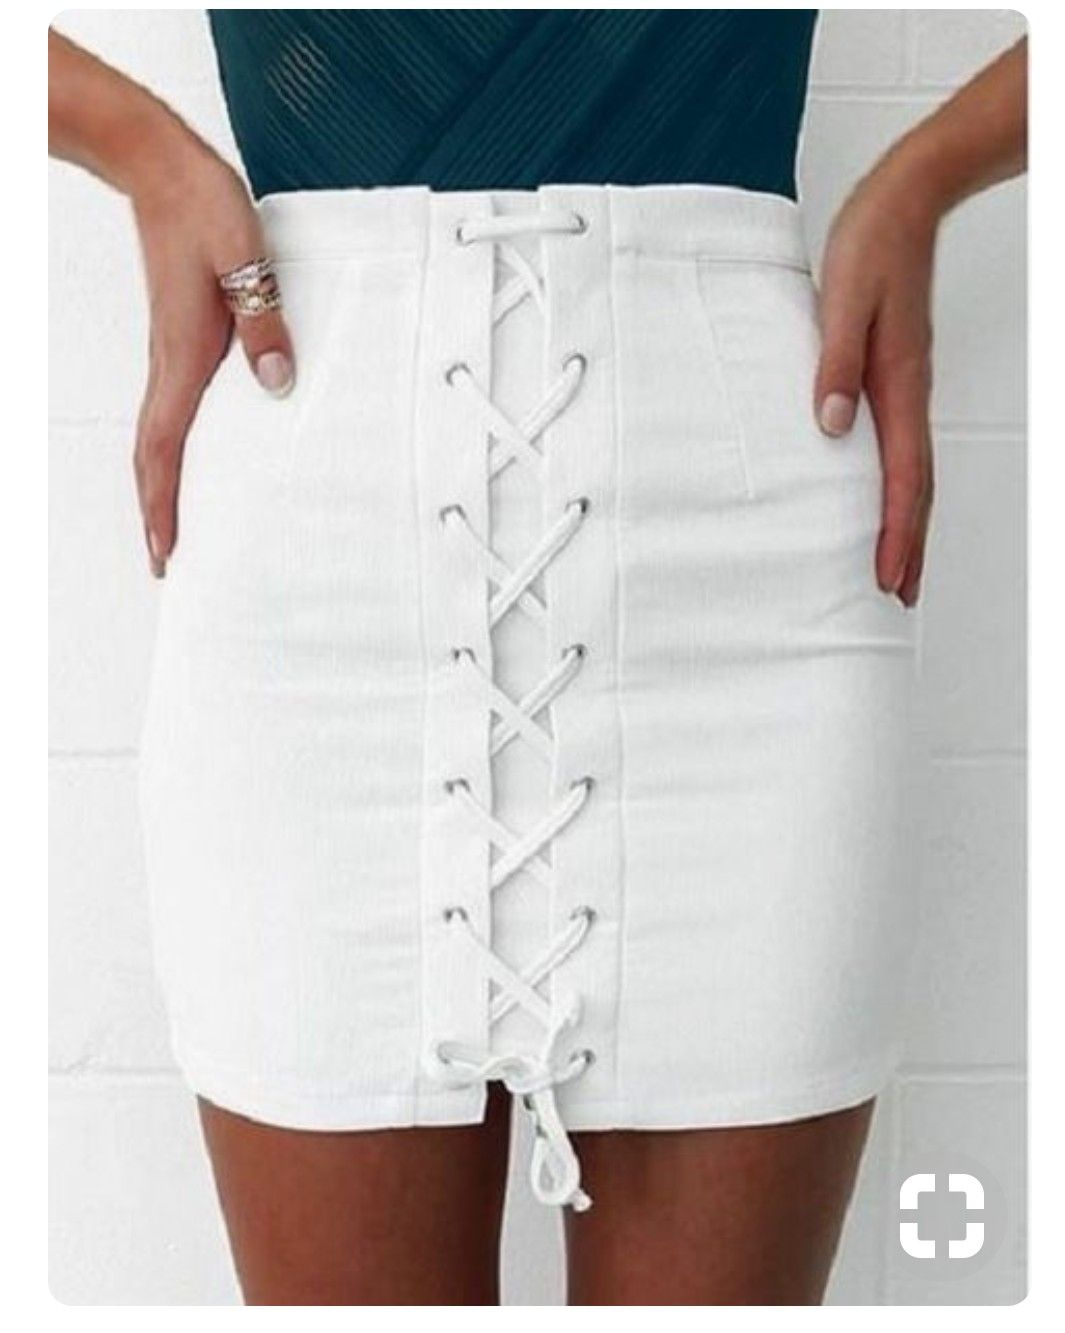 f39f2e2aeb4fb insta & pinterest @kenziemxller   style in 2019   Lace up skirt ...